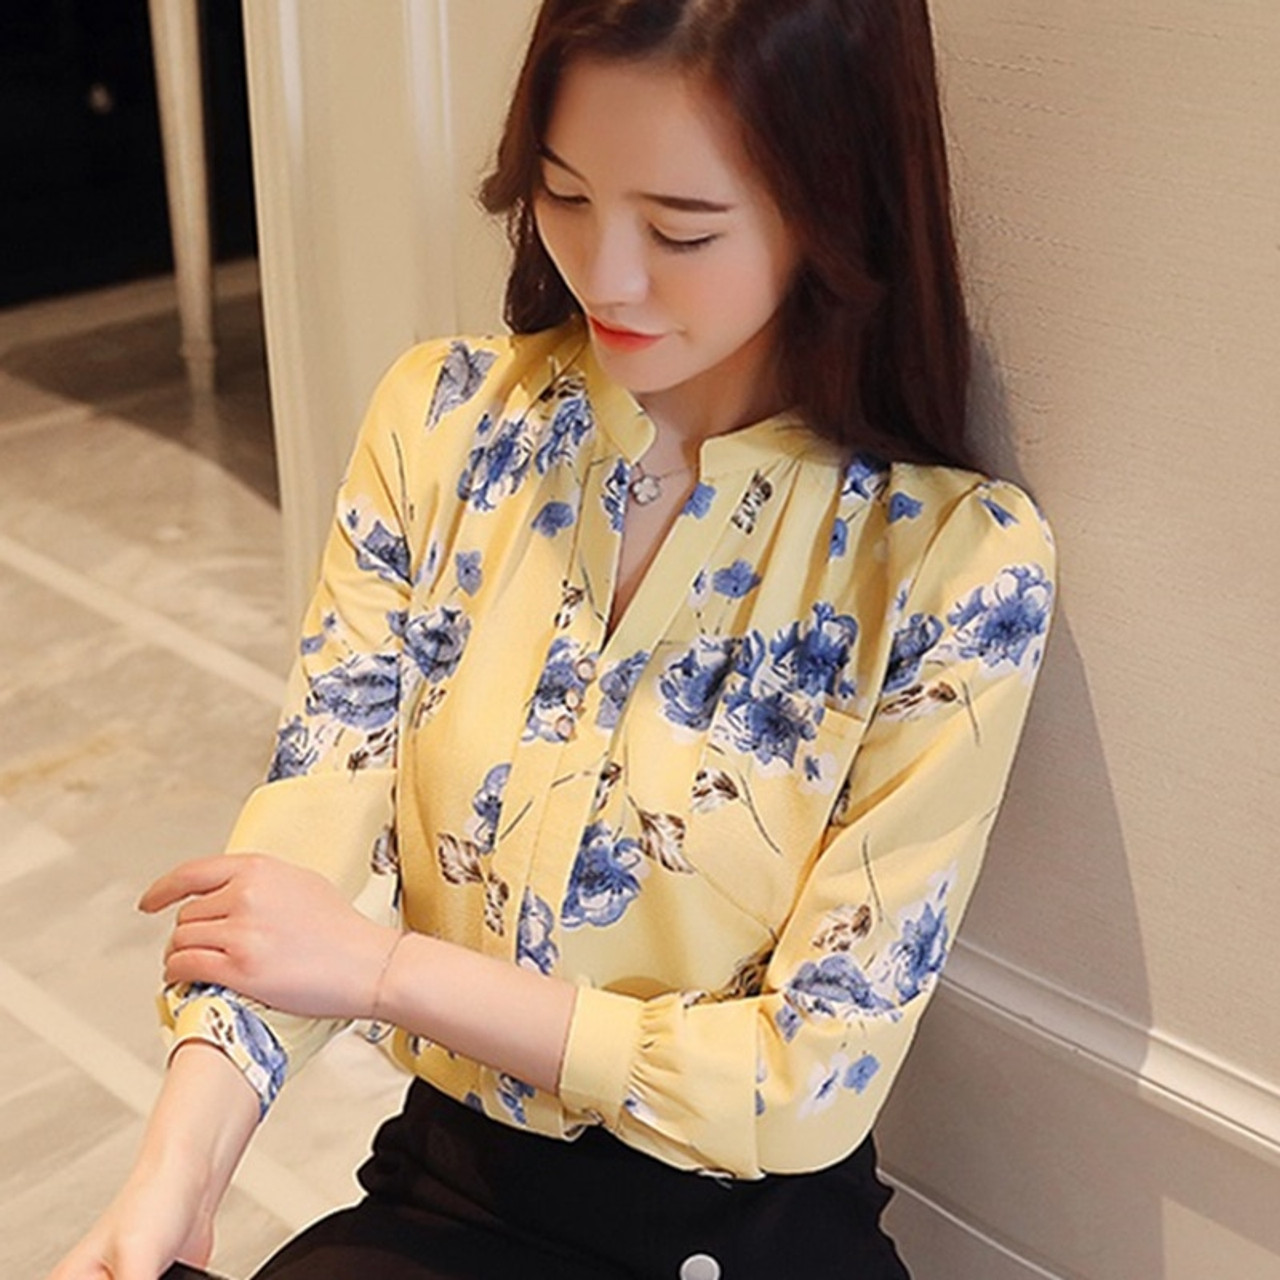 5cdc78b4c9 2018 Womens Tops And Blouses Autumn Fashion V-Neck Chiffon Blouses Slim  Women Chiffon Blouse Office Work Wear Shirts Women Tops